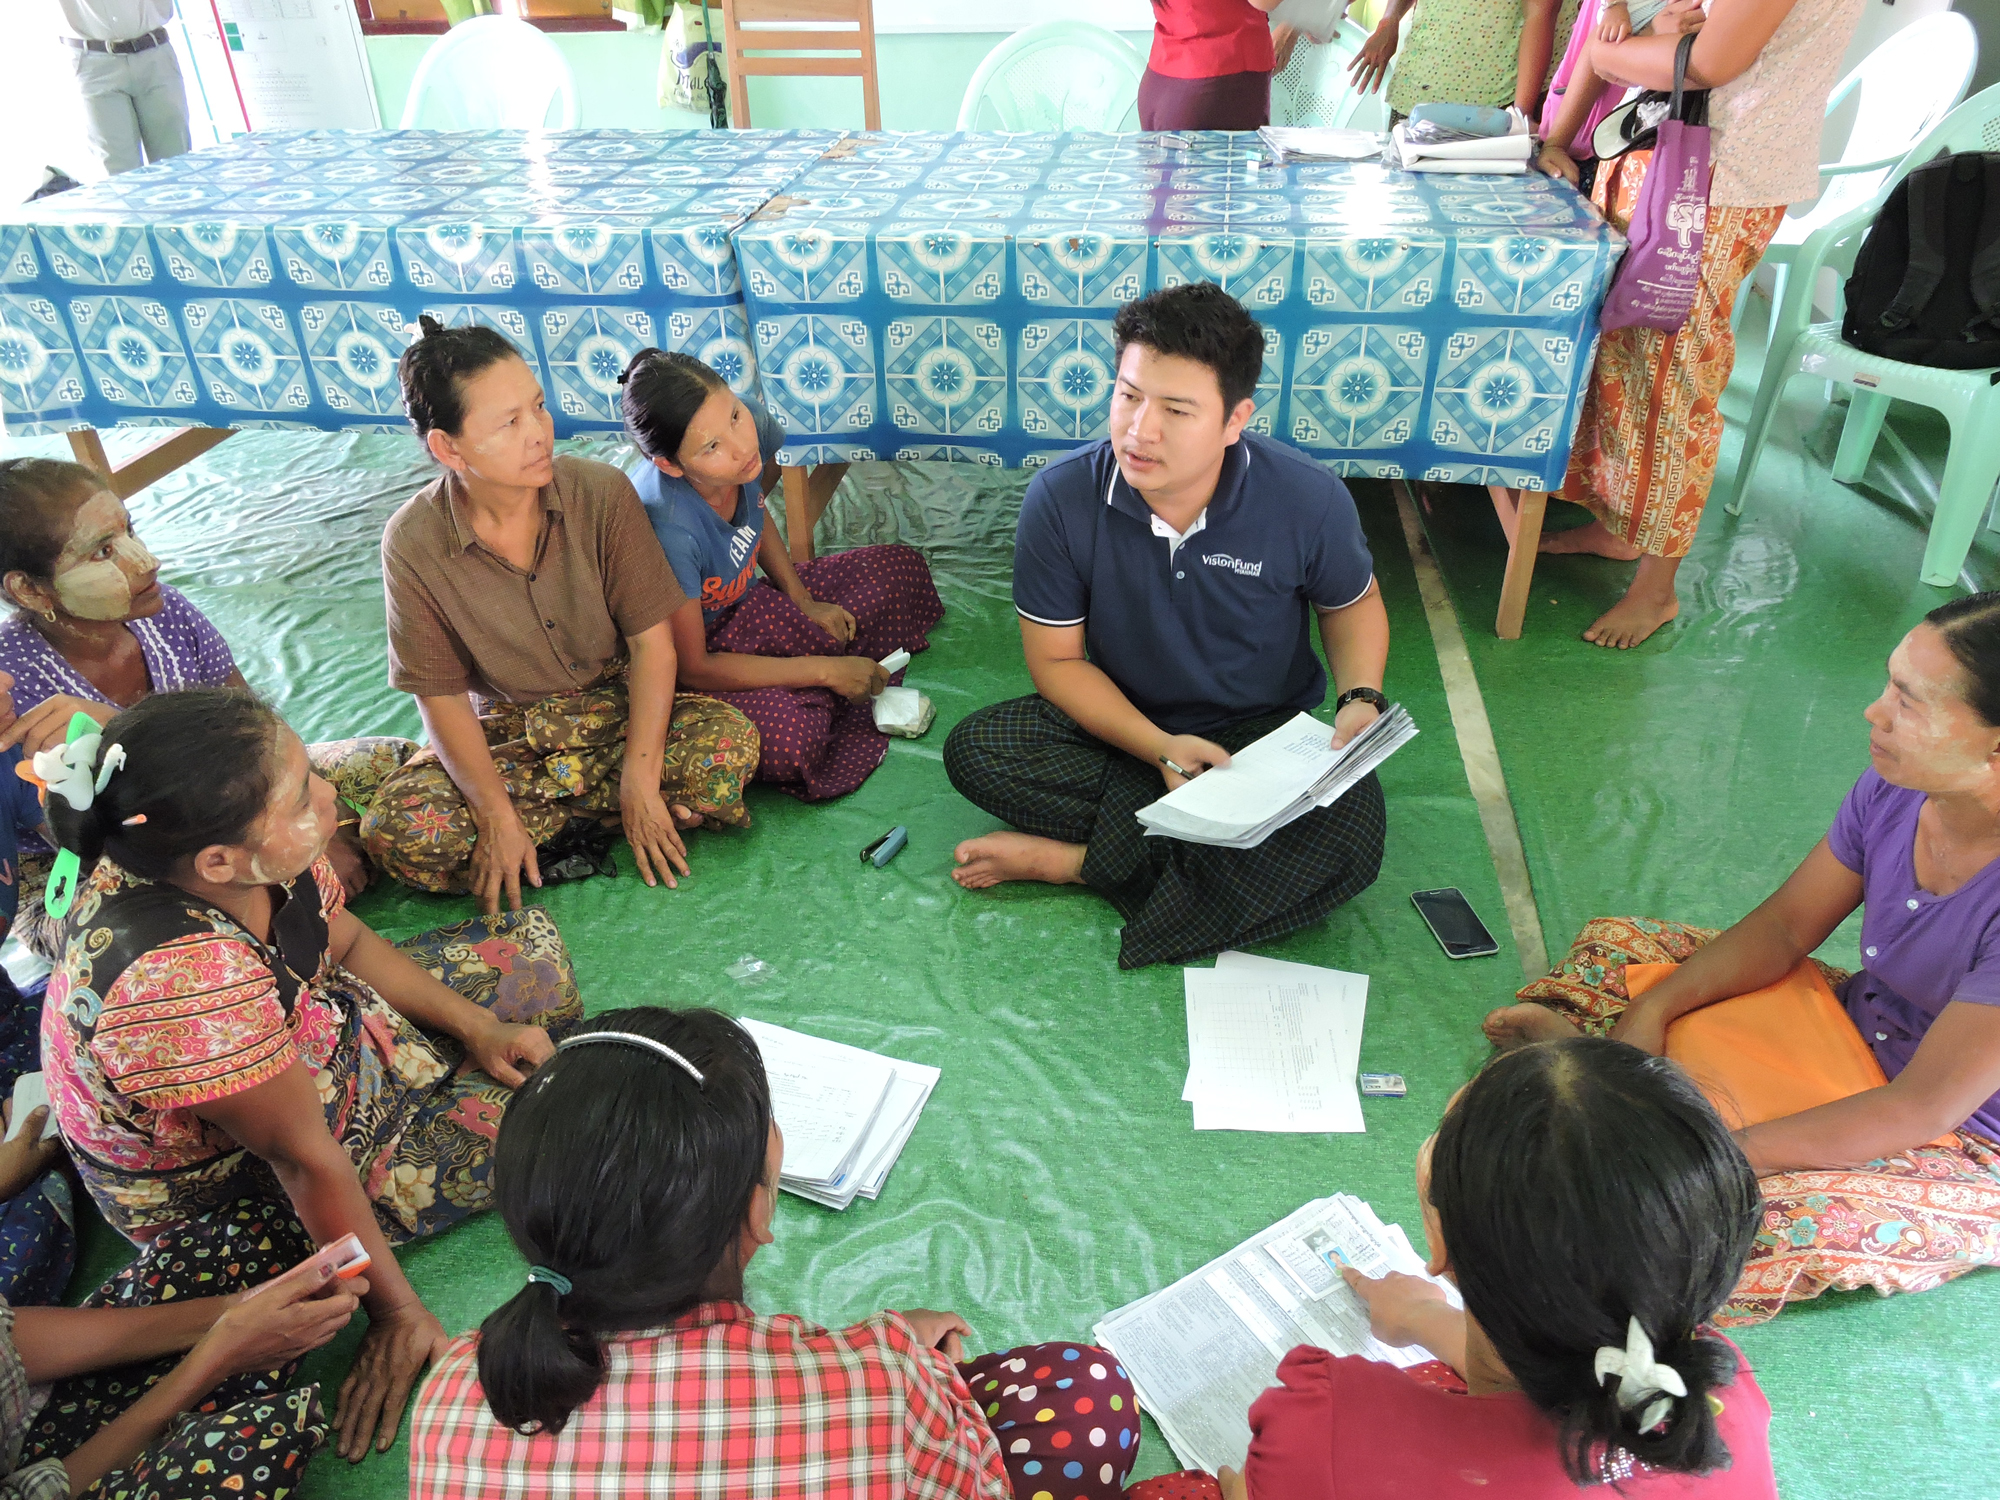 Savings group working with VisionFund staff member in Myanmar